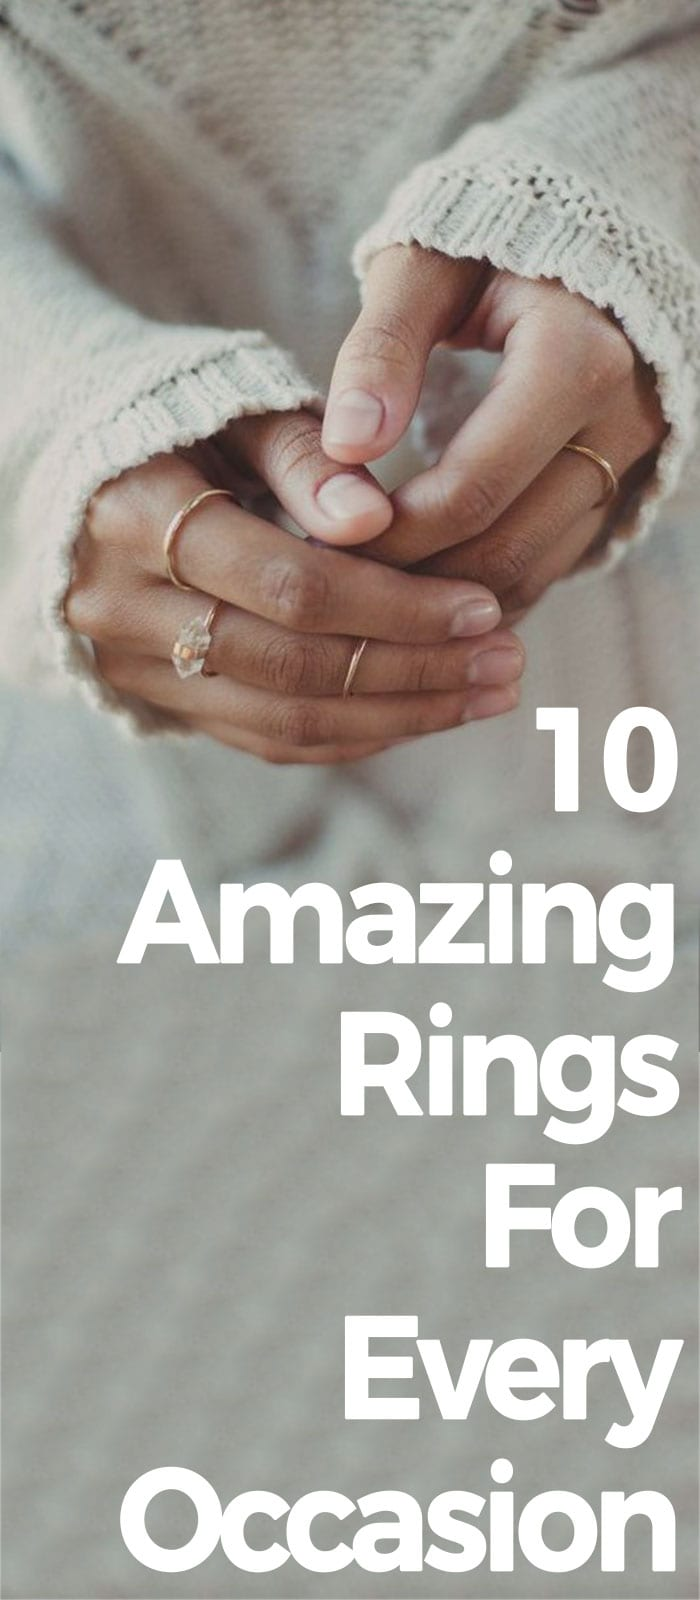 10 Amazing Rings For Every Occasion